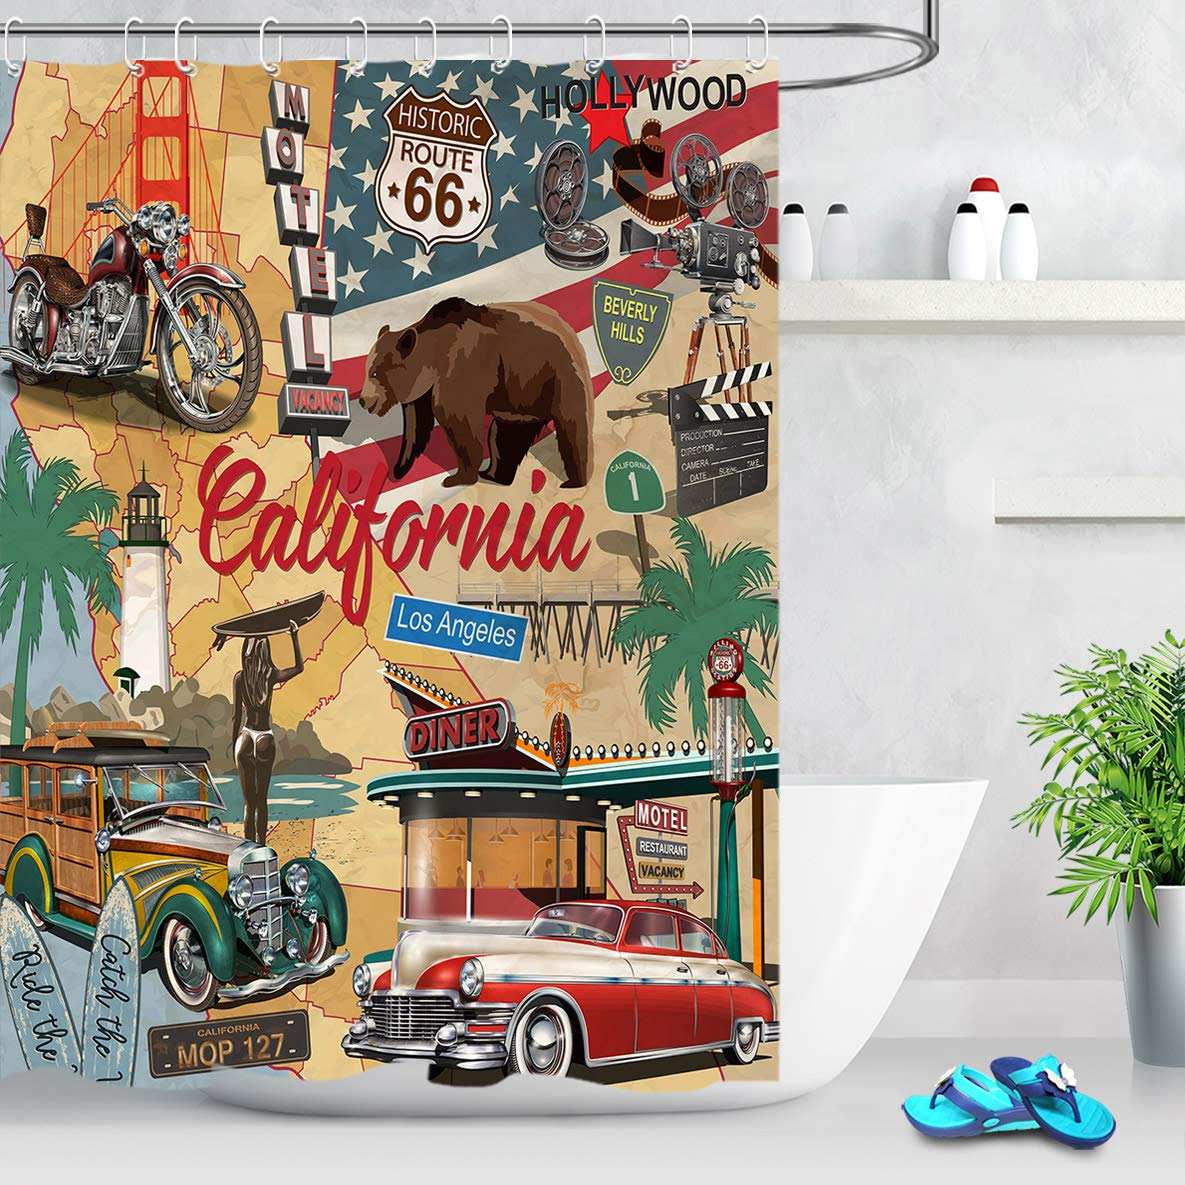 Vintage American Shower Curtain Route 66 Decor with California Historic Bear Shower Curtain